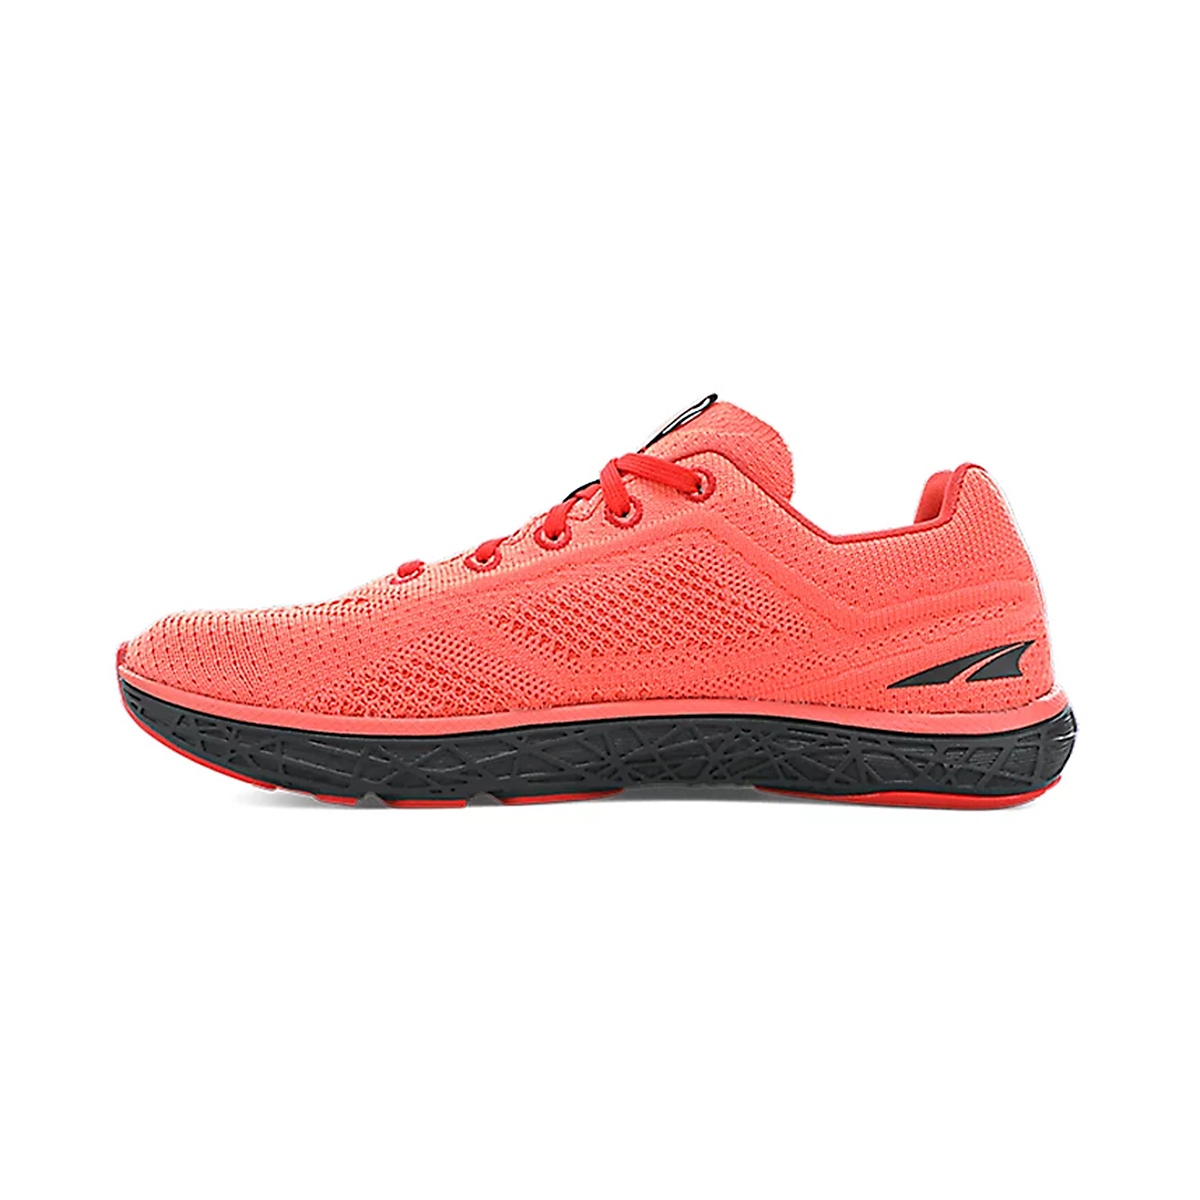 Women's Altra Escalante 2.5 Running Shoe - Color: Coral - Size: 5.5 - Width: Regular, Coral, large, image 2